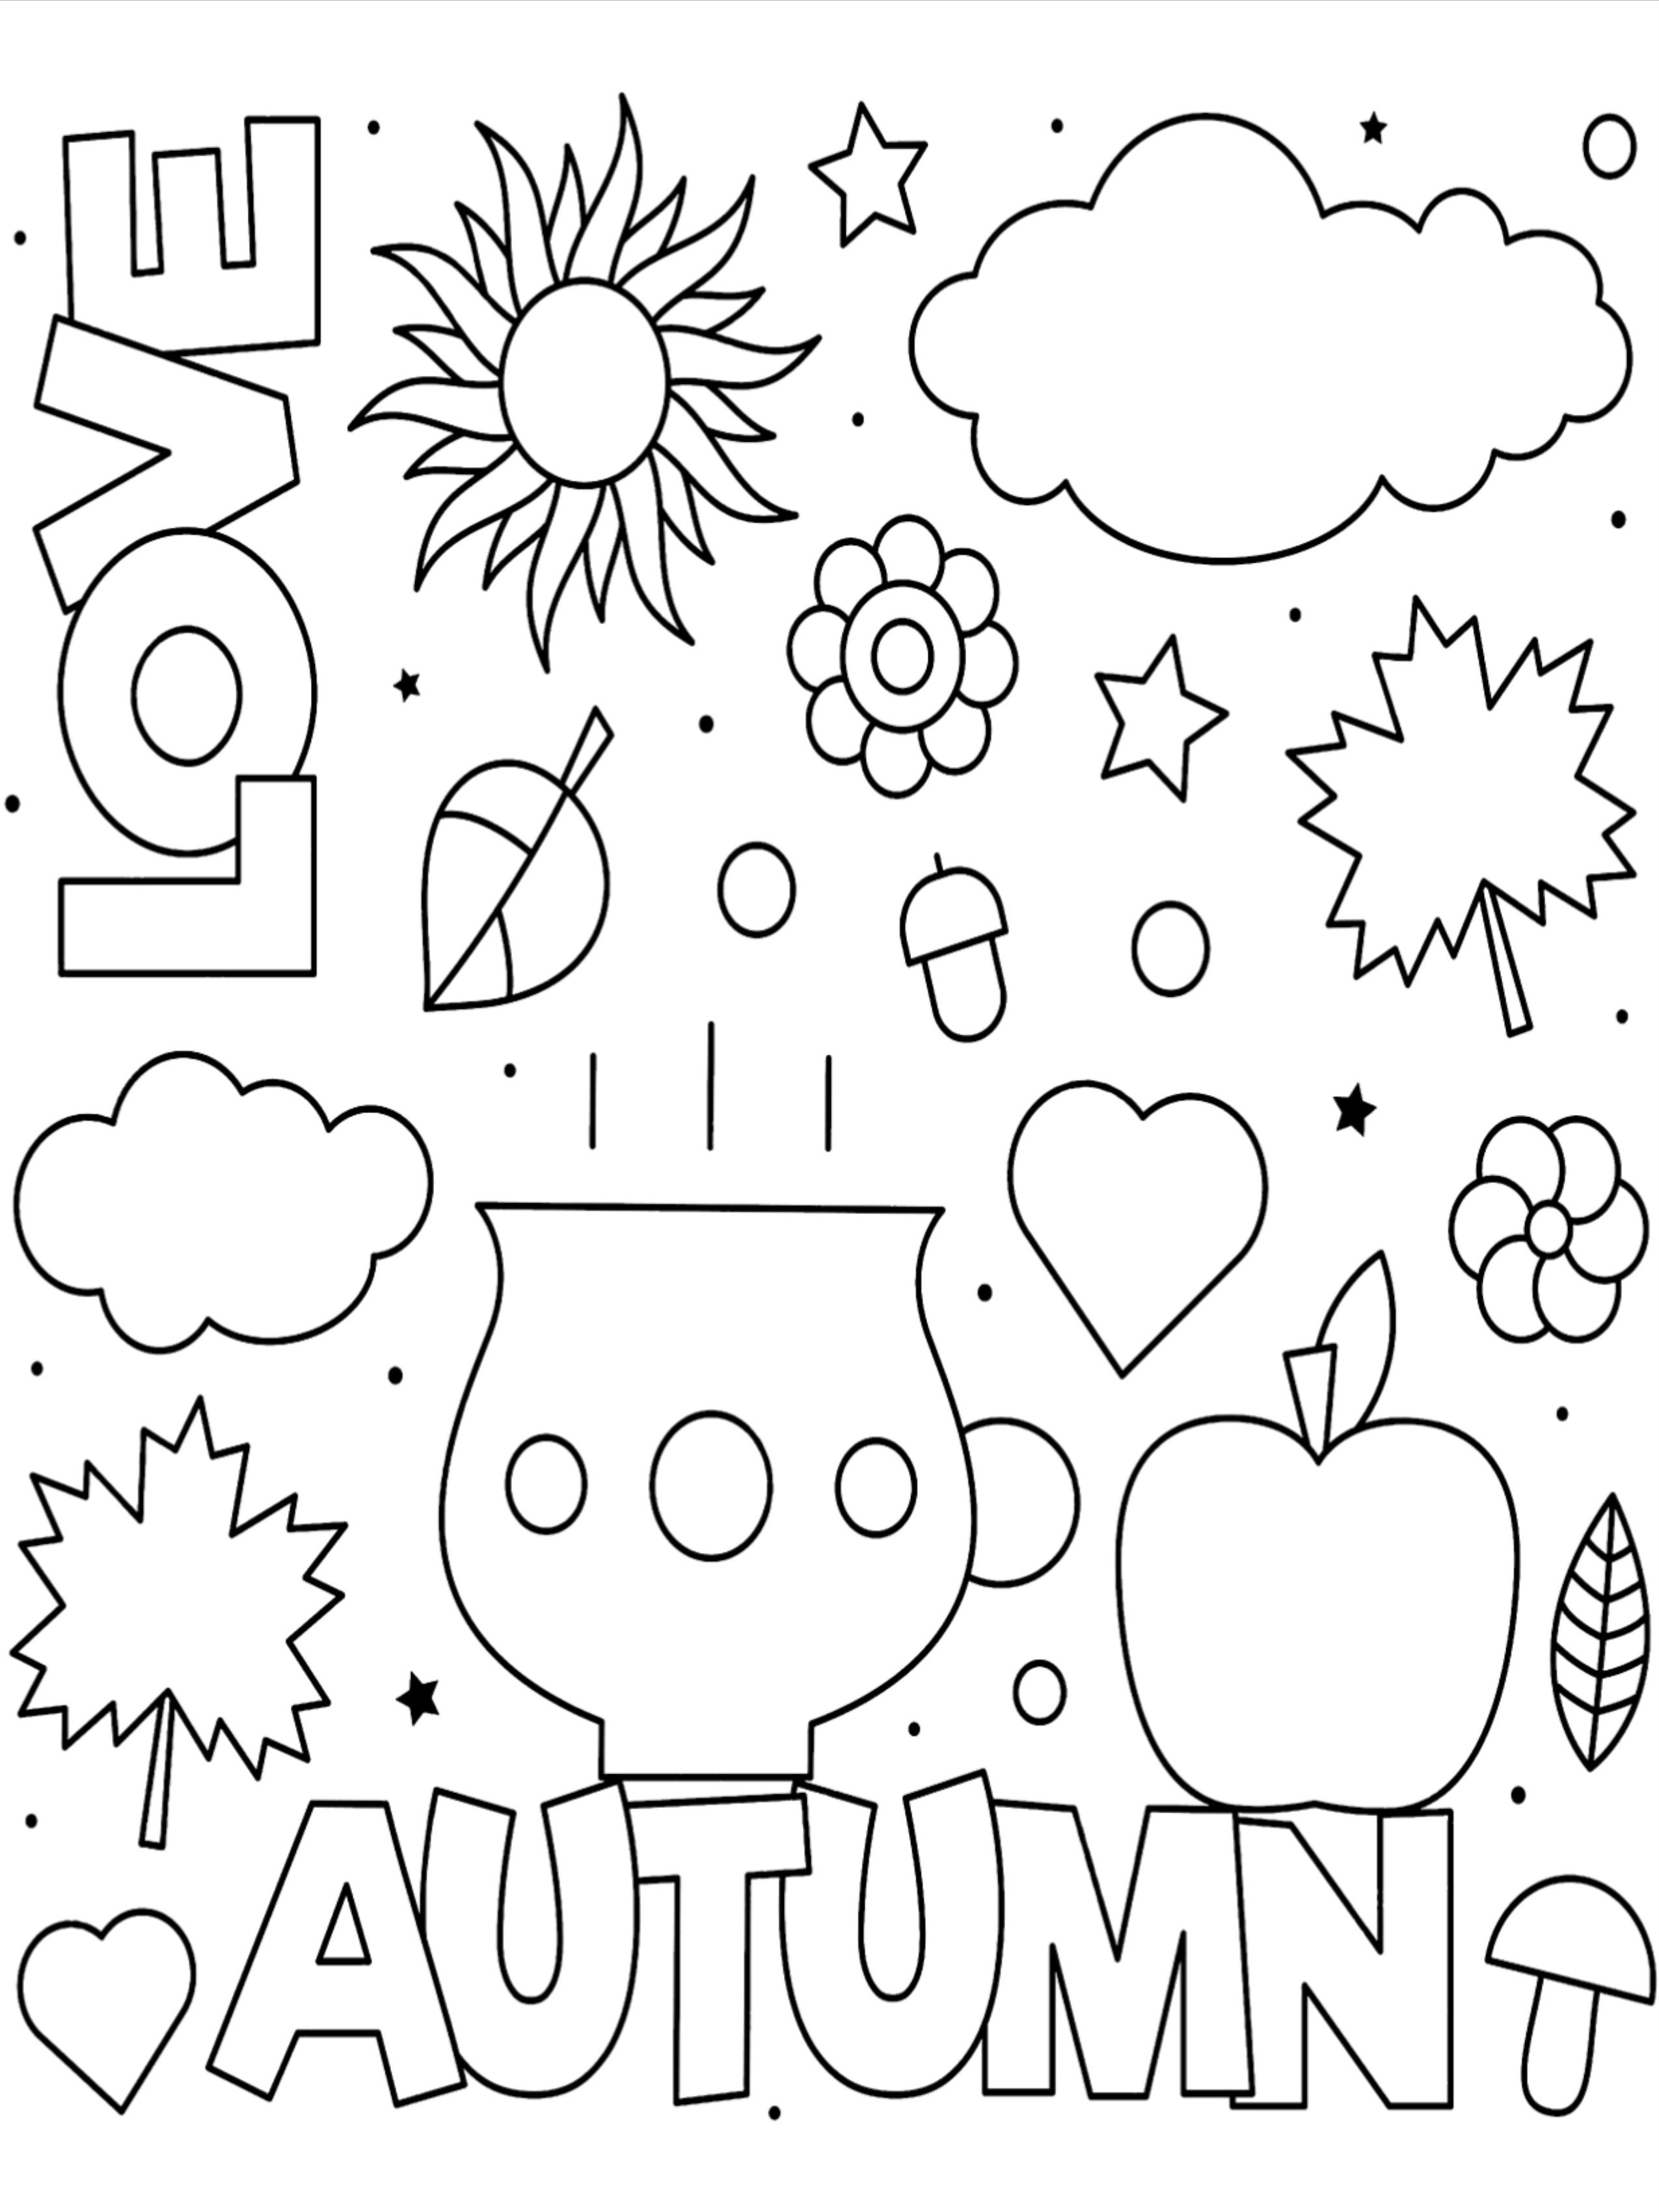 50 Fall Coloring Pages For Kids Fall Coloring Pages Coloring Pages Coloring Pages For Kids